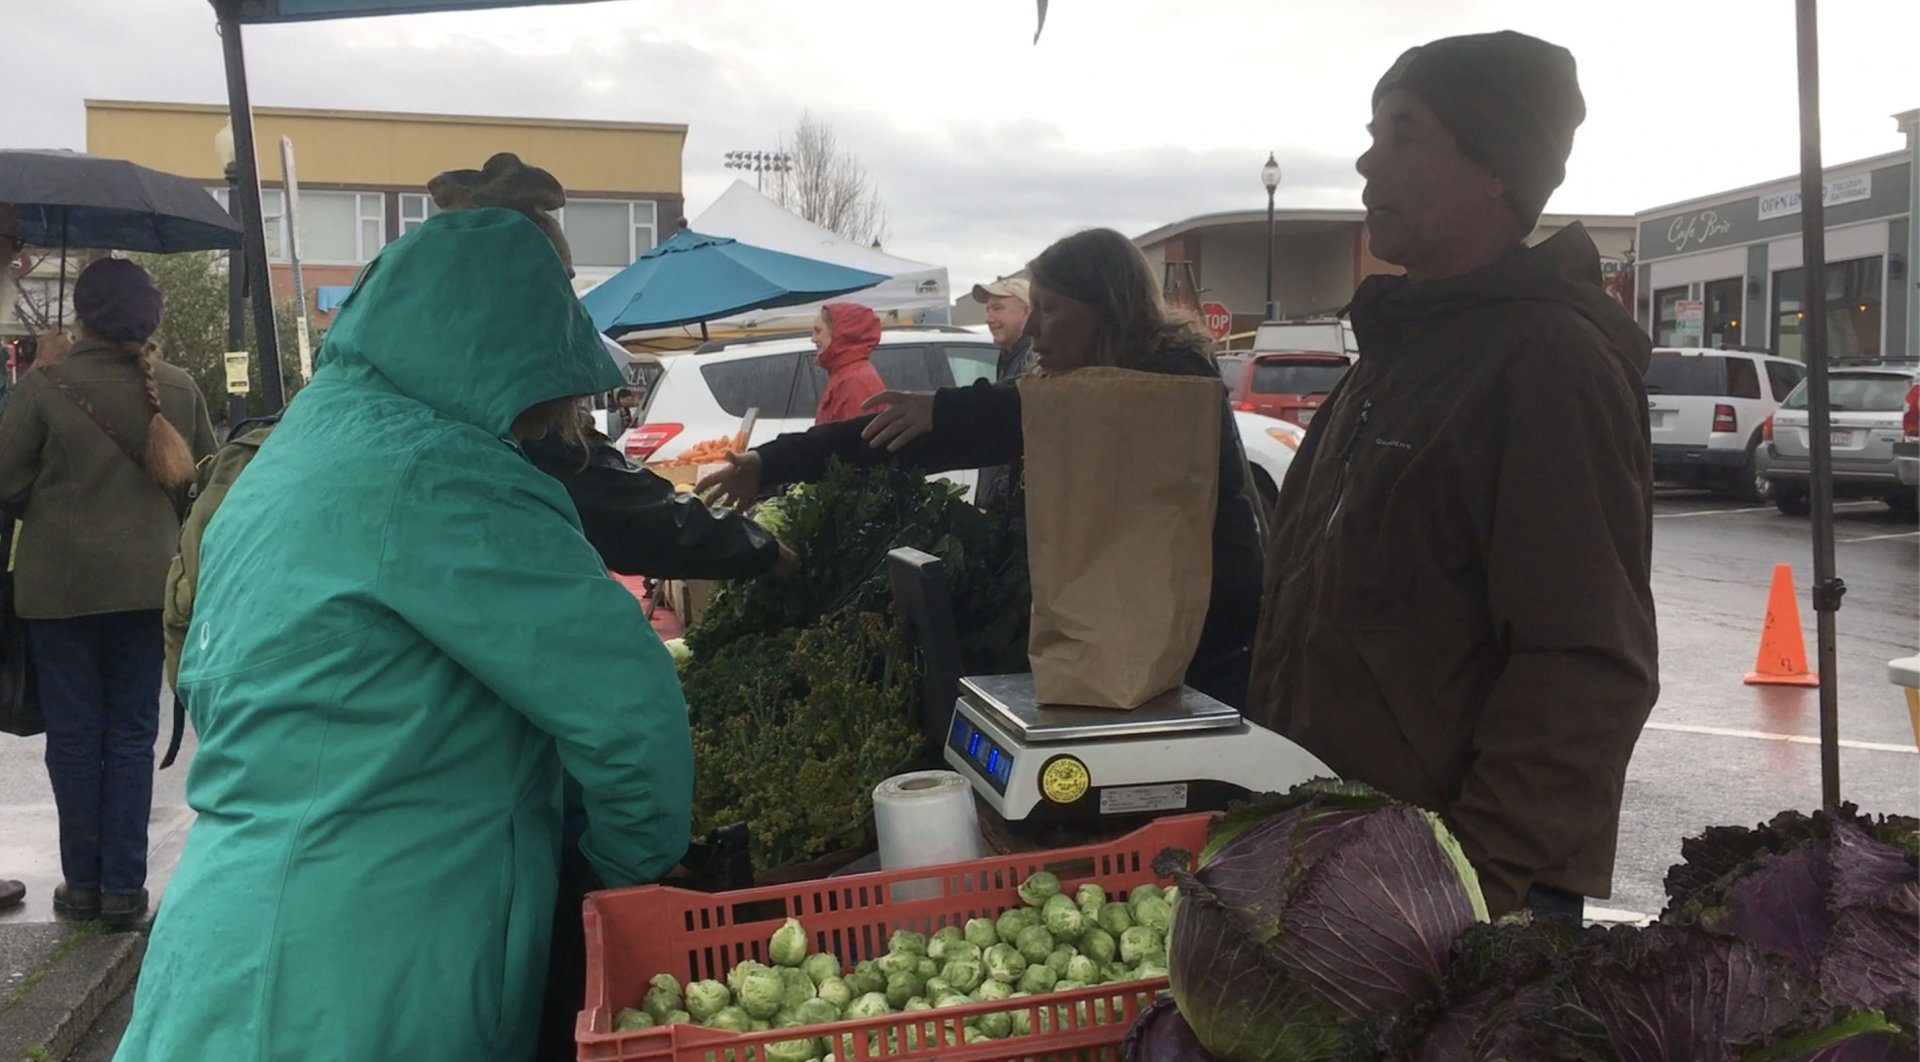 Fred and Amy Diekmeyer help customers at the Luna Farm stand at the Arcata Farmers Market on Saturday, Feb. 2.   Photo by Christina Samoy.